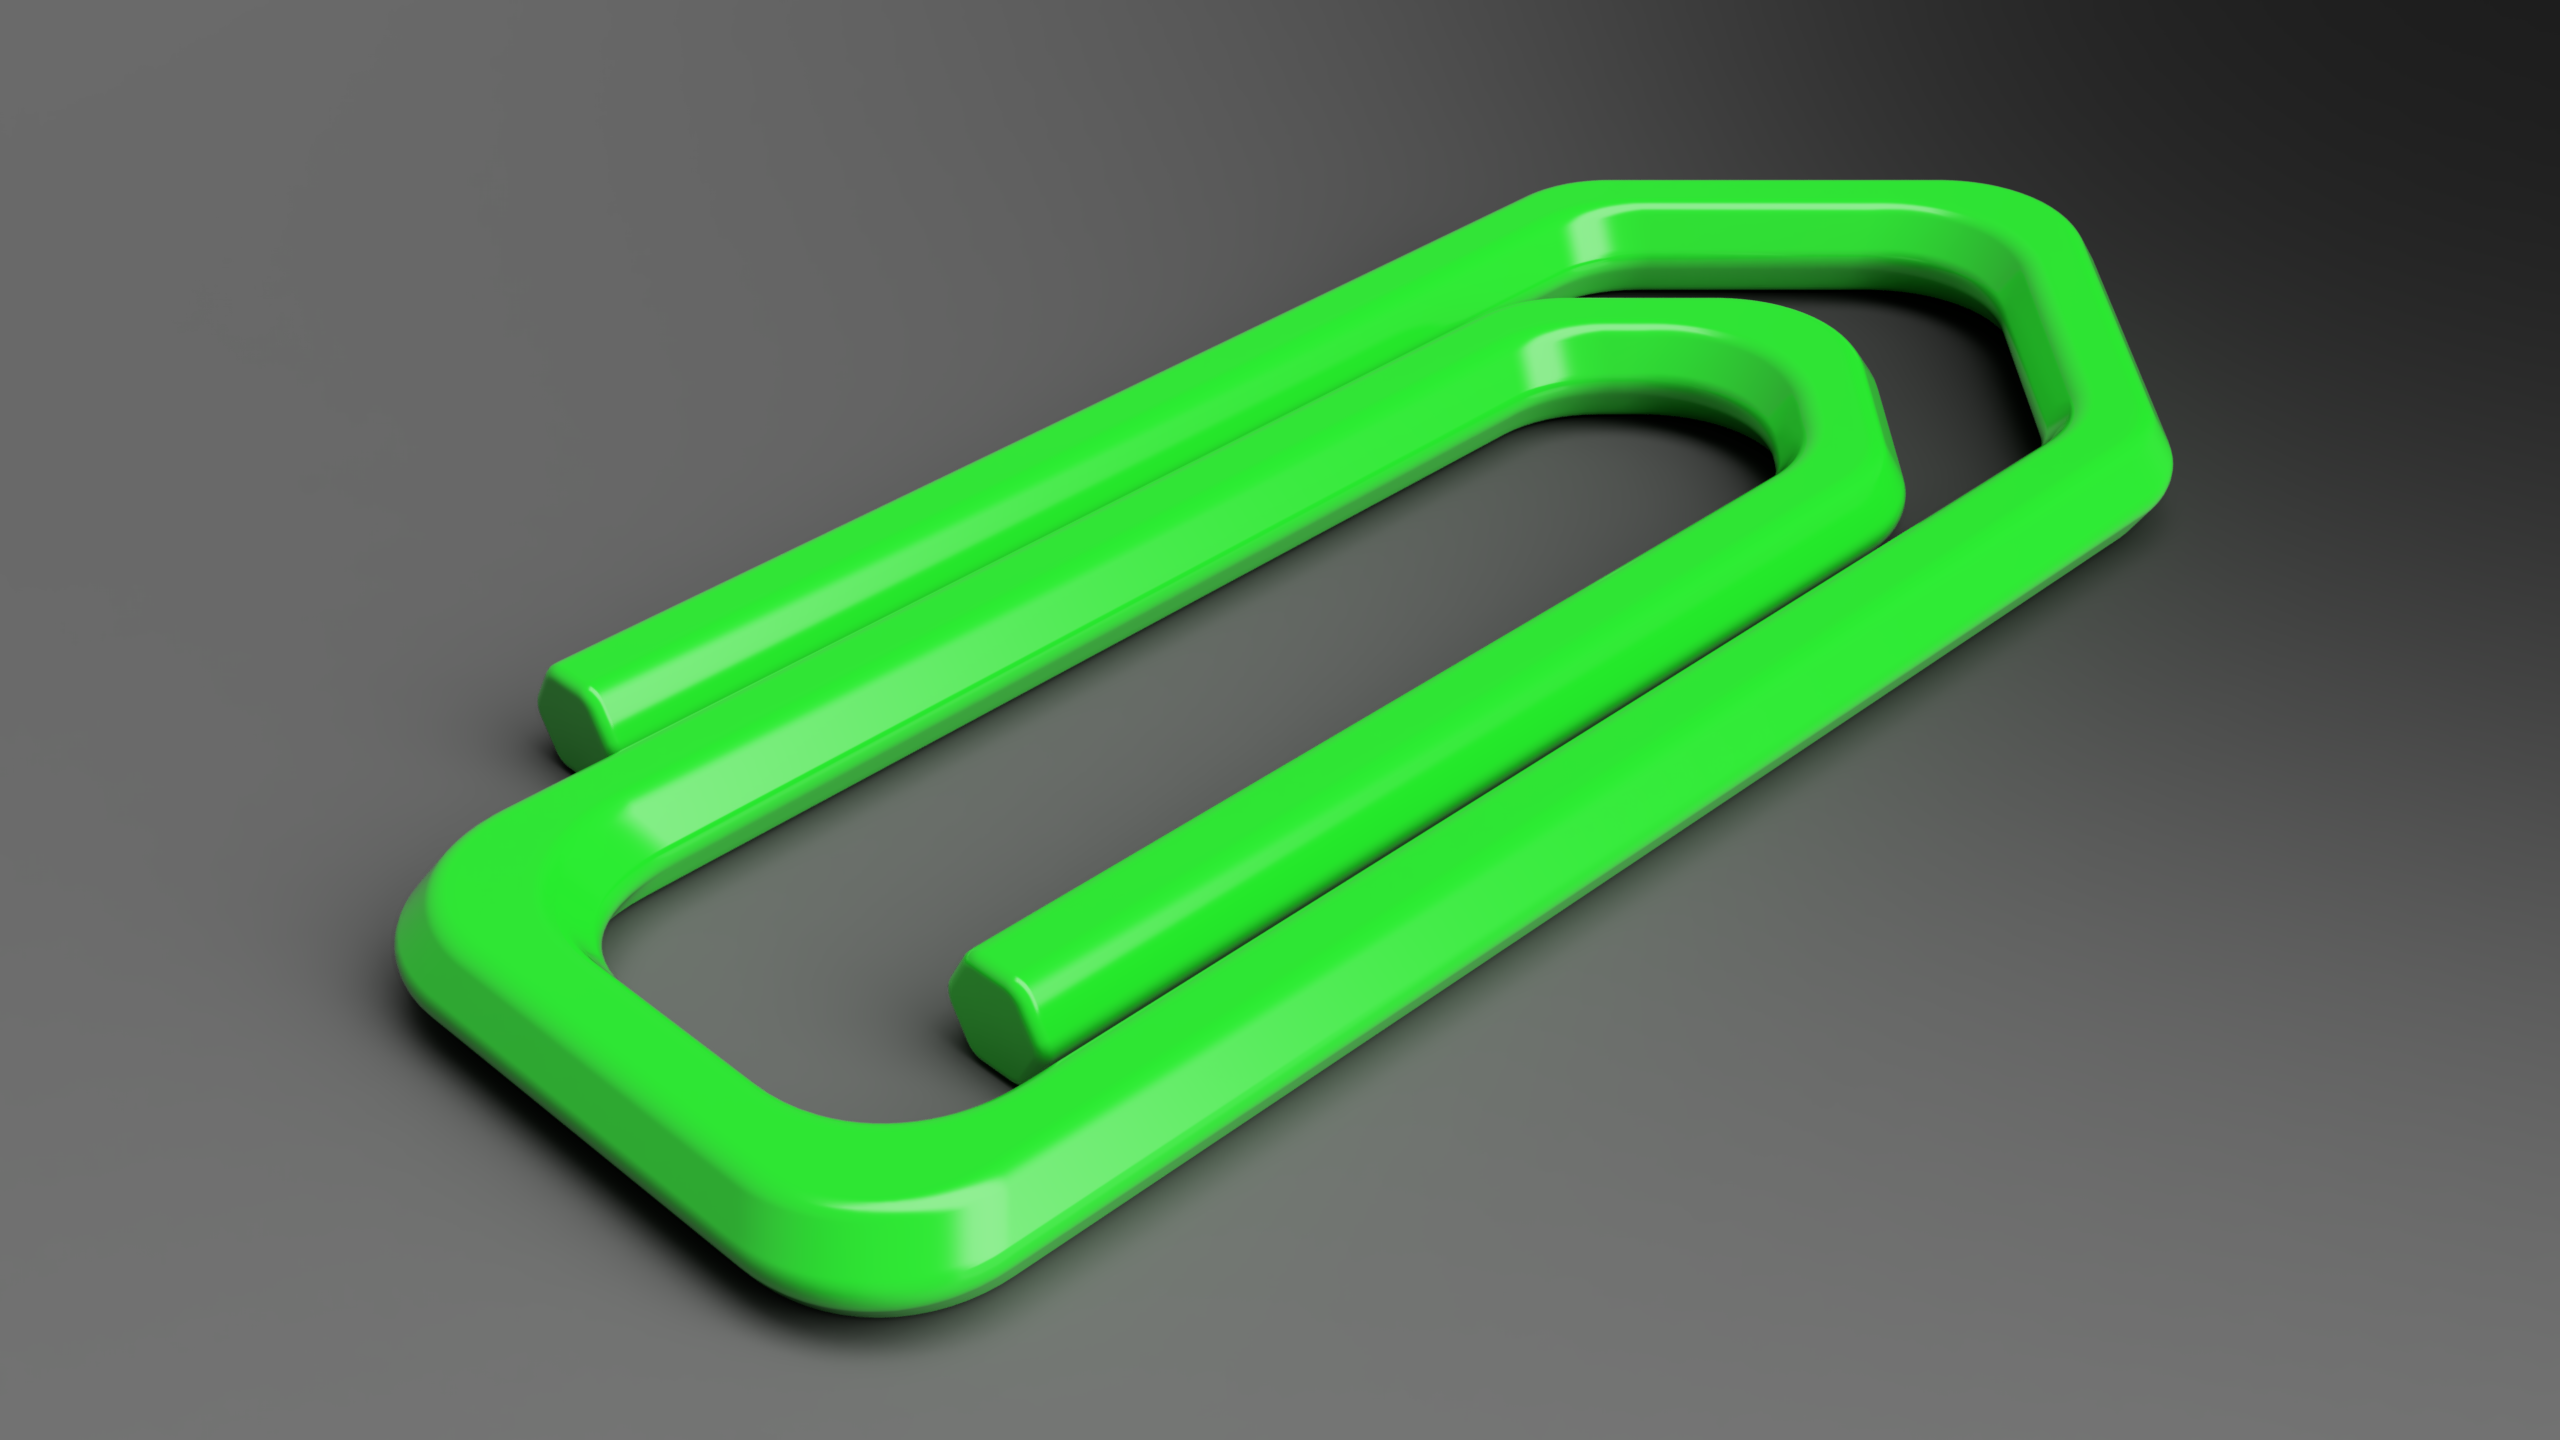 Paperclip_home.png Download free STL file Paperclip • 3D printable design, Wilko